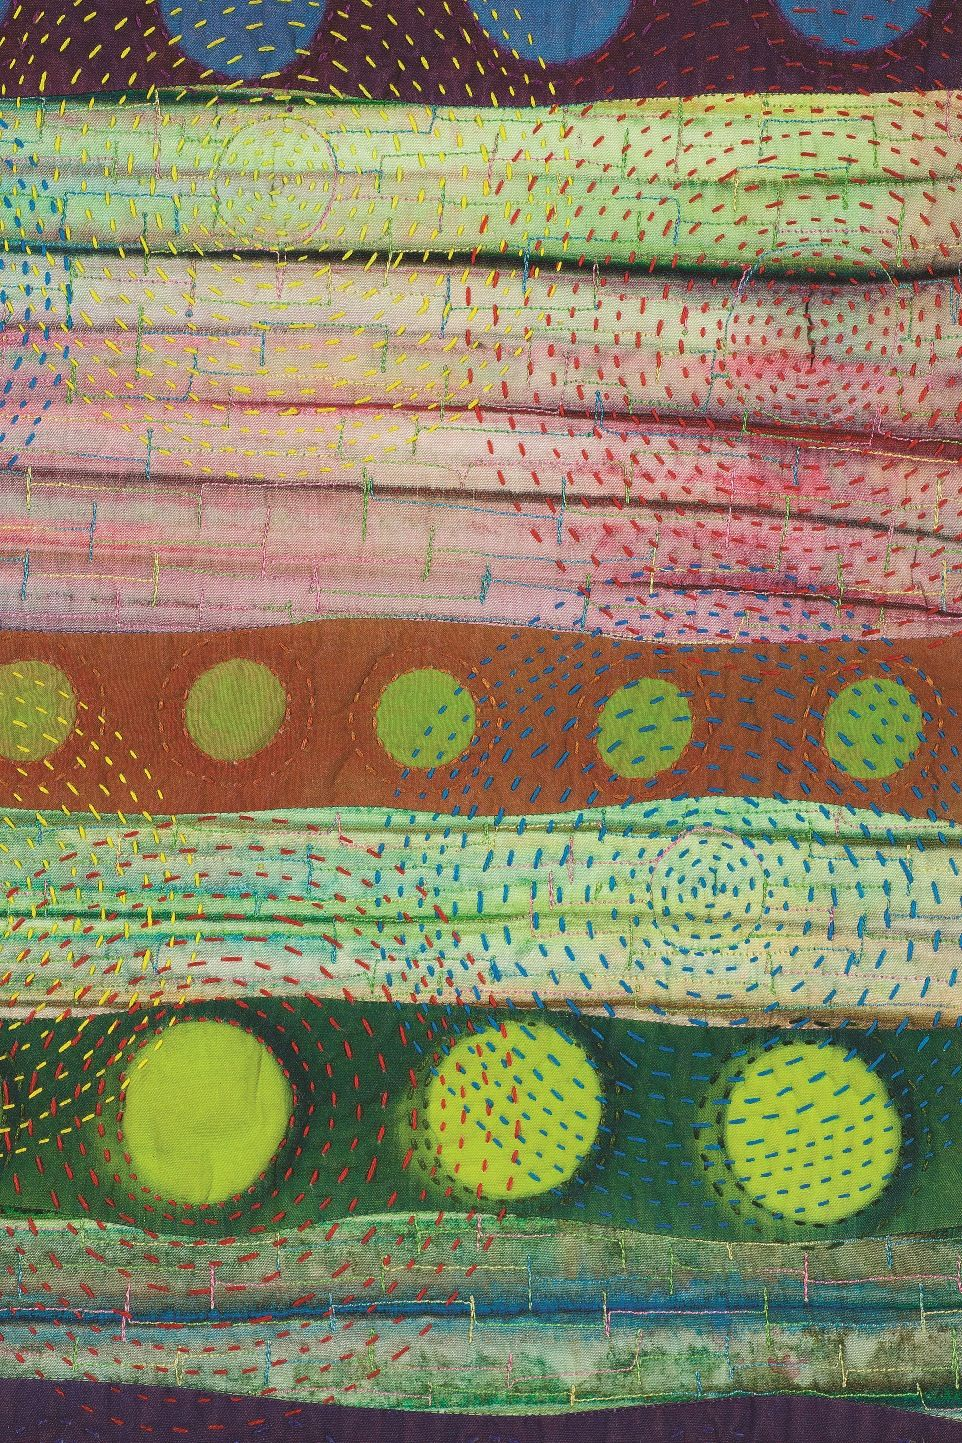 Fiber Visions: New Legacies: Contemporary Art Quilts